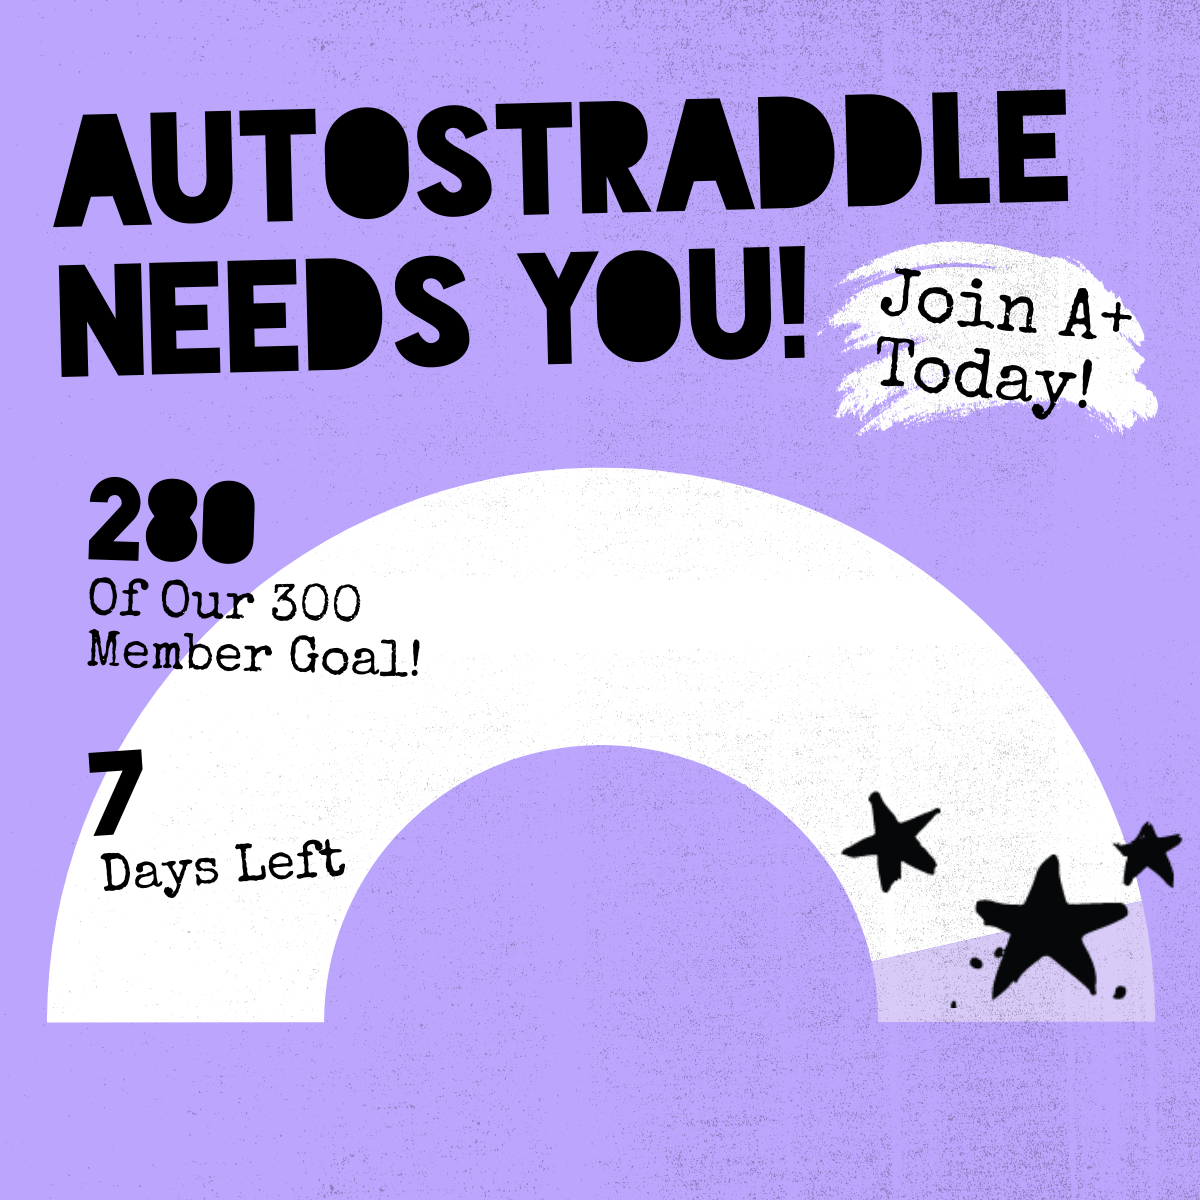 Autpstraddle Needs You! Join A+ Today! 280 of our 300 Member Goal! 7 Days left.